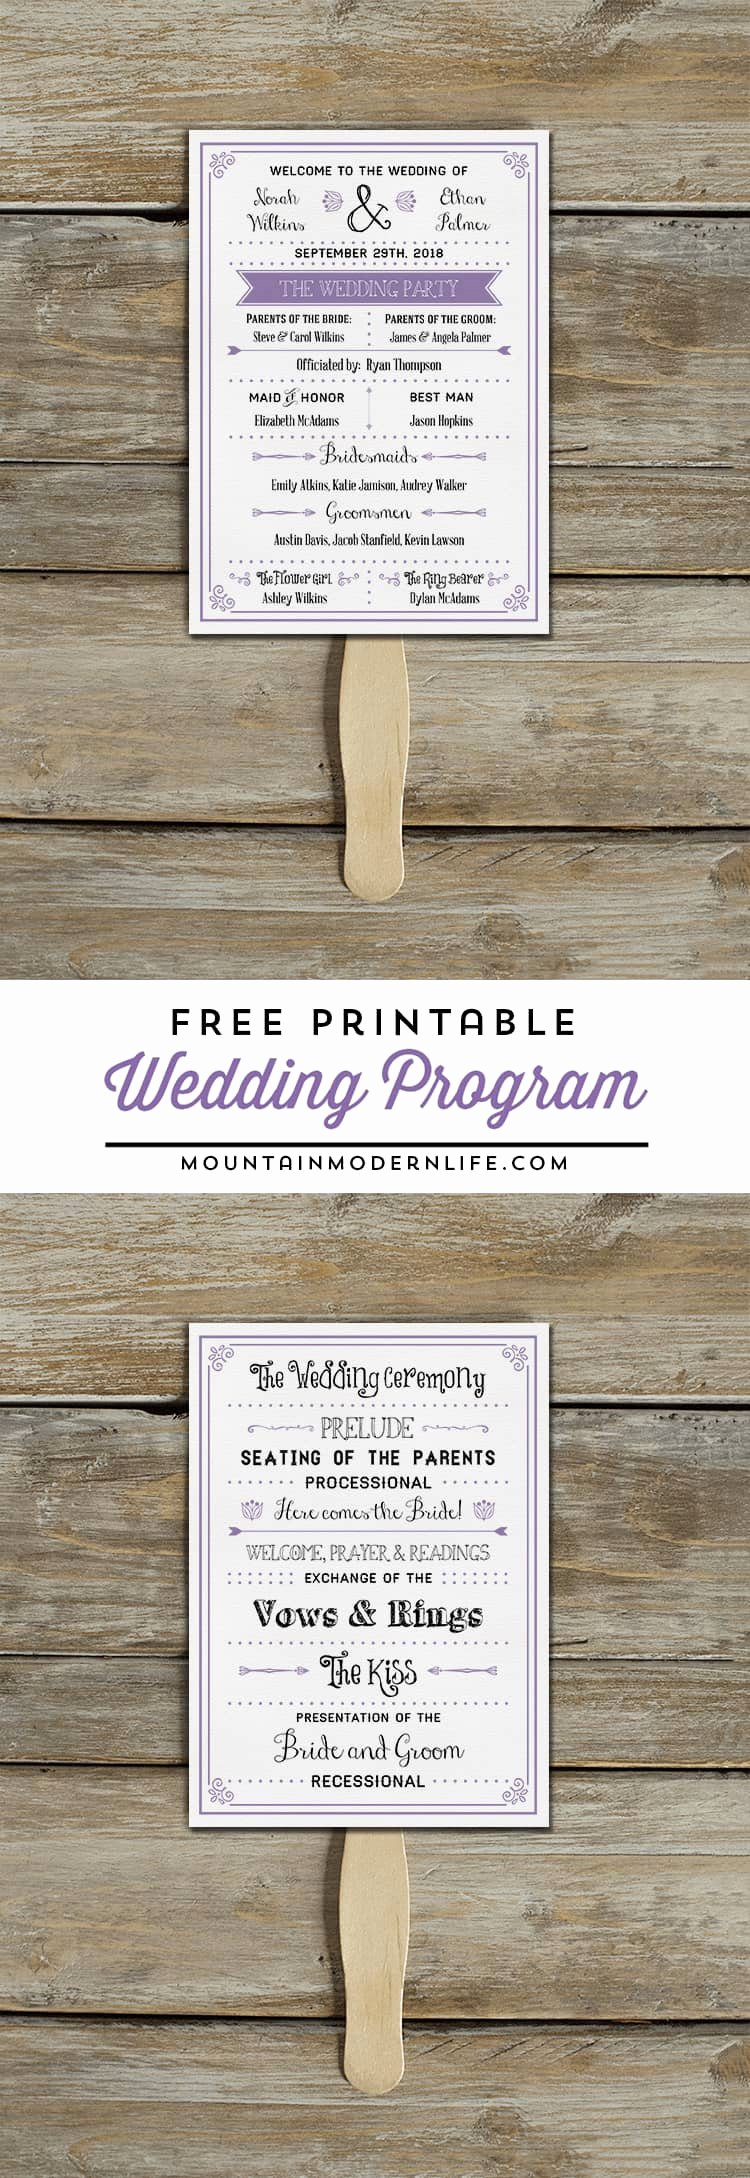 Wedding Fan Templates Free Lovely Free Printable Wedding Program